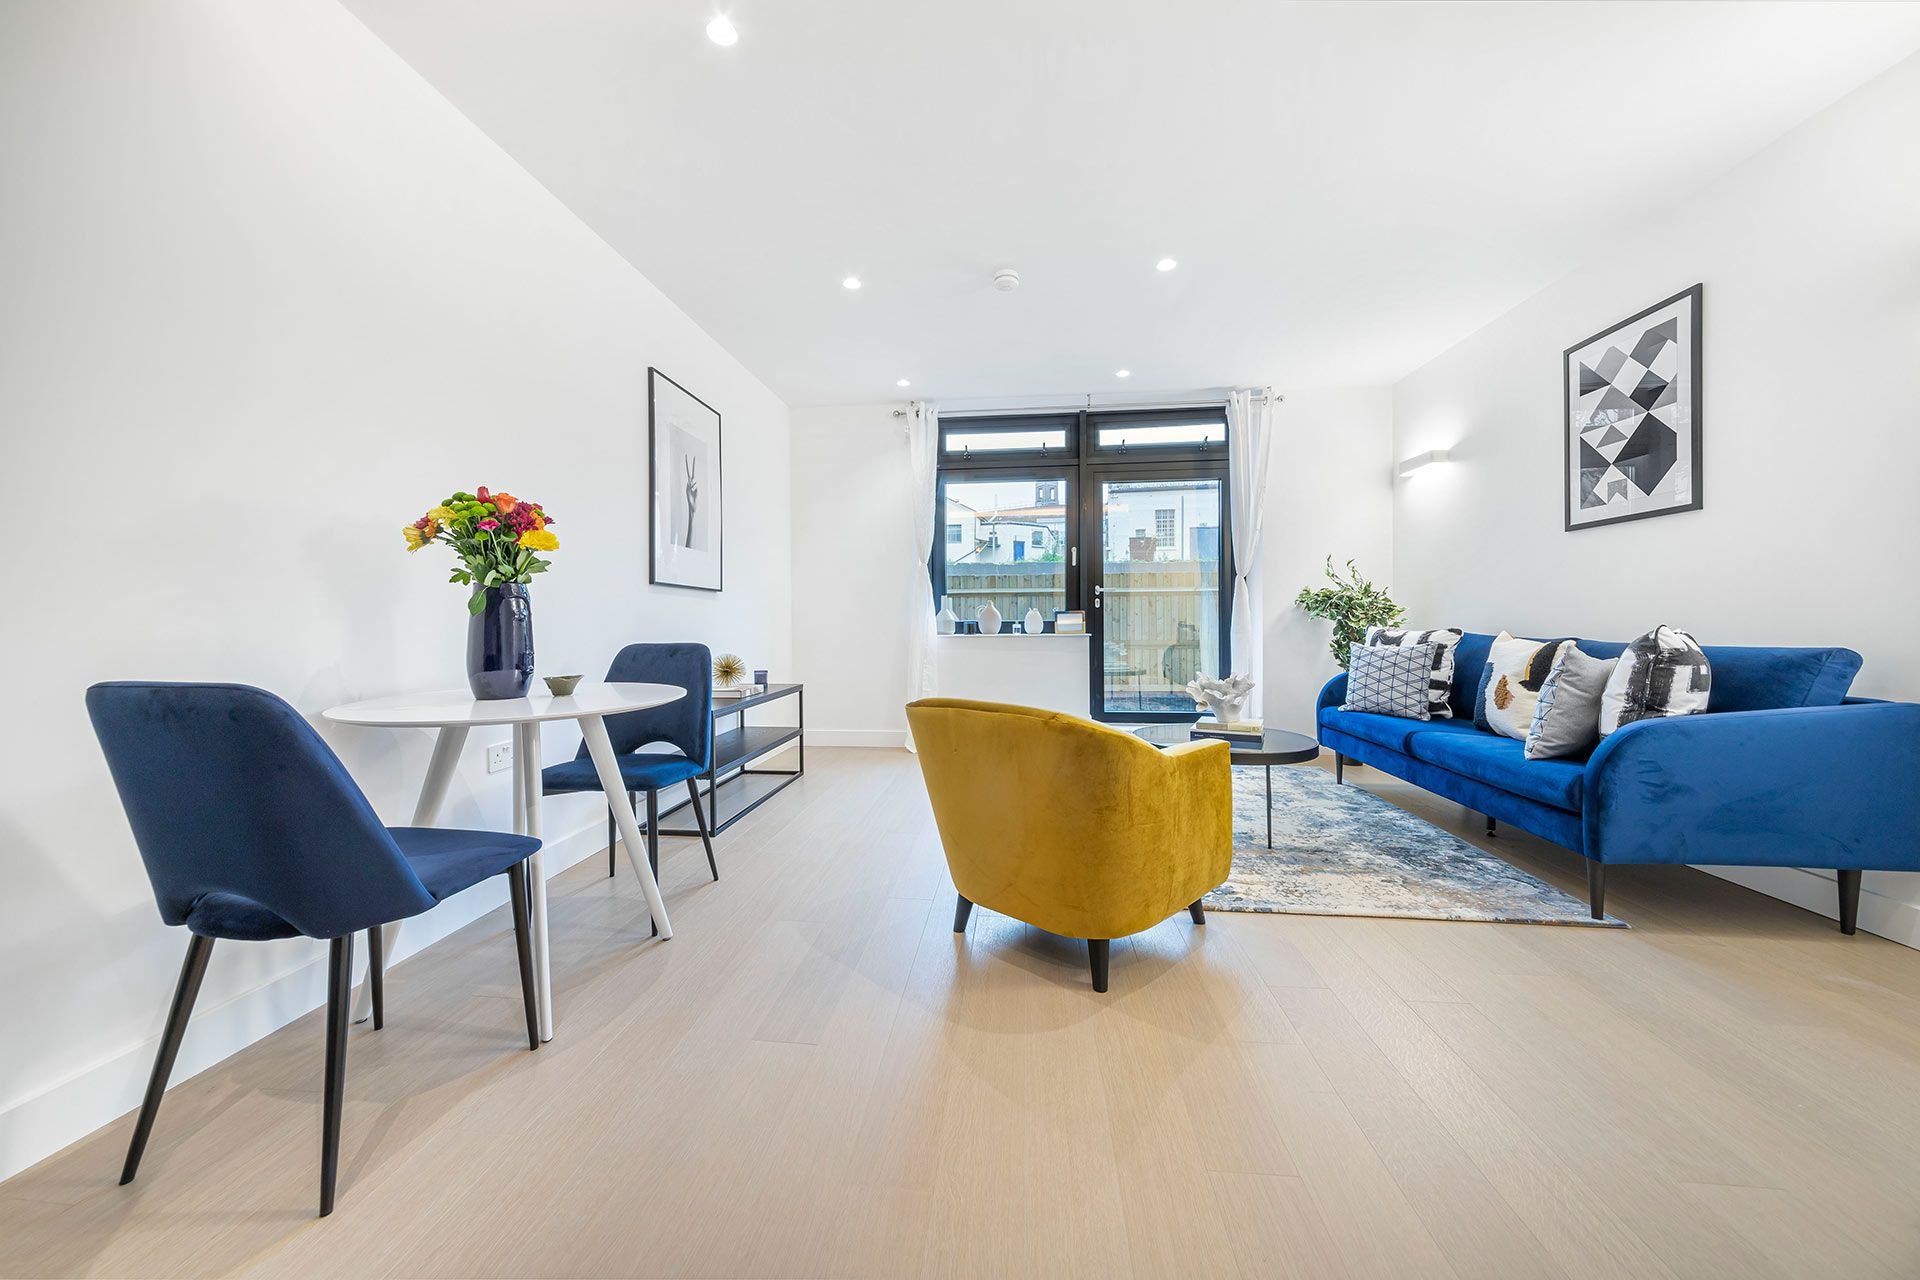 2 Bedroom apartment to rent in London SKI-FH-0062